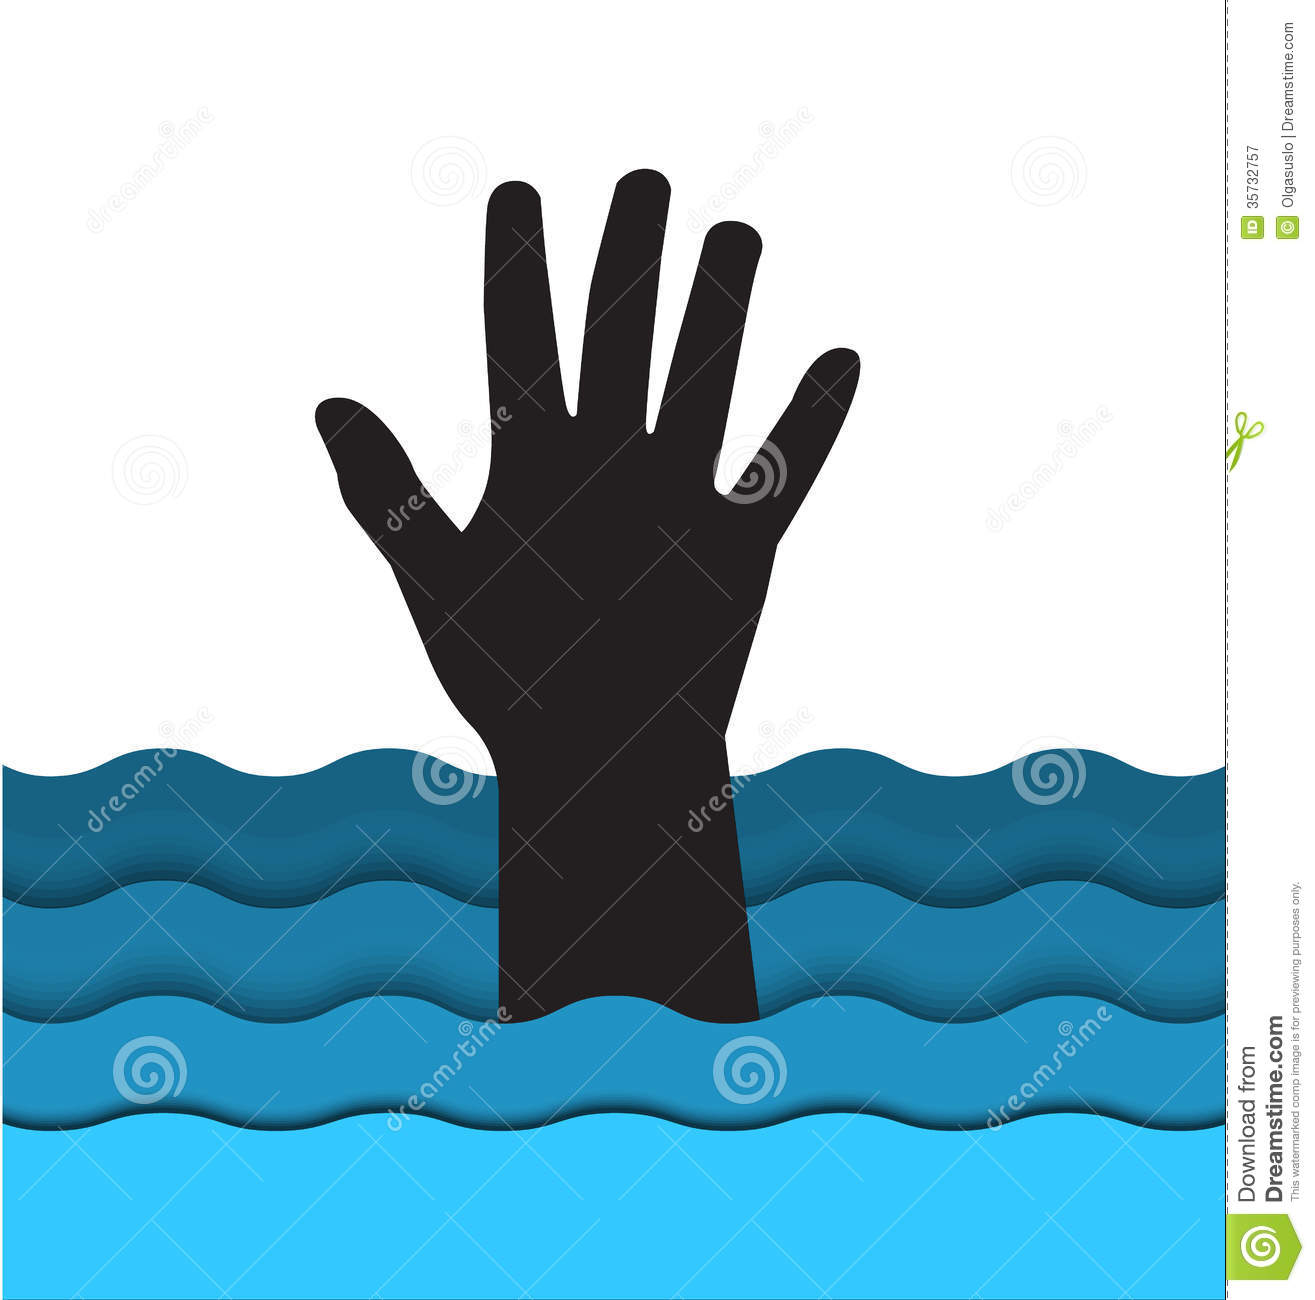 Person Drowning Clipart Drowning Man Hand Sticking Out